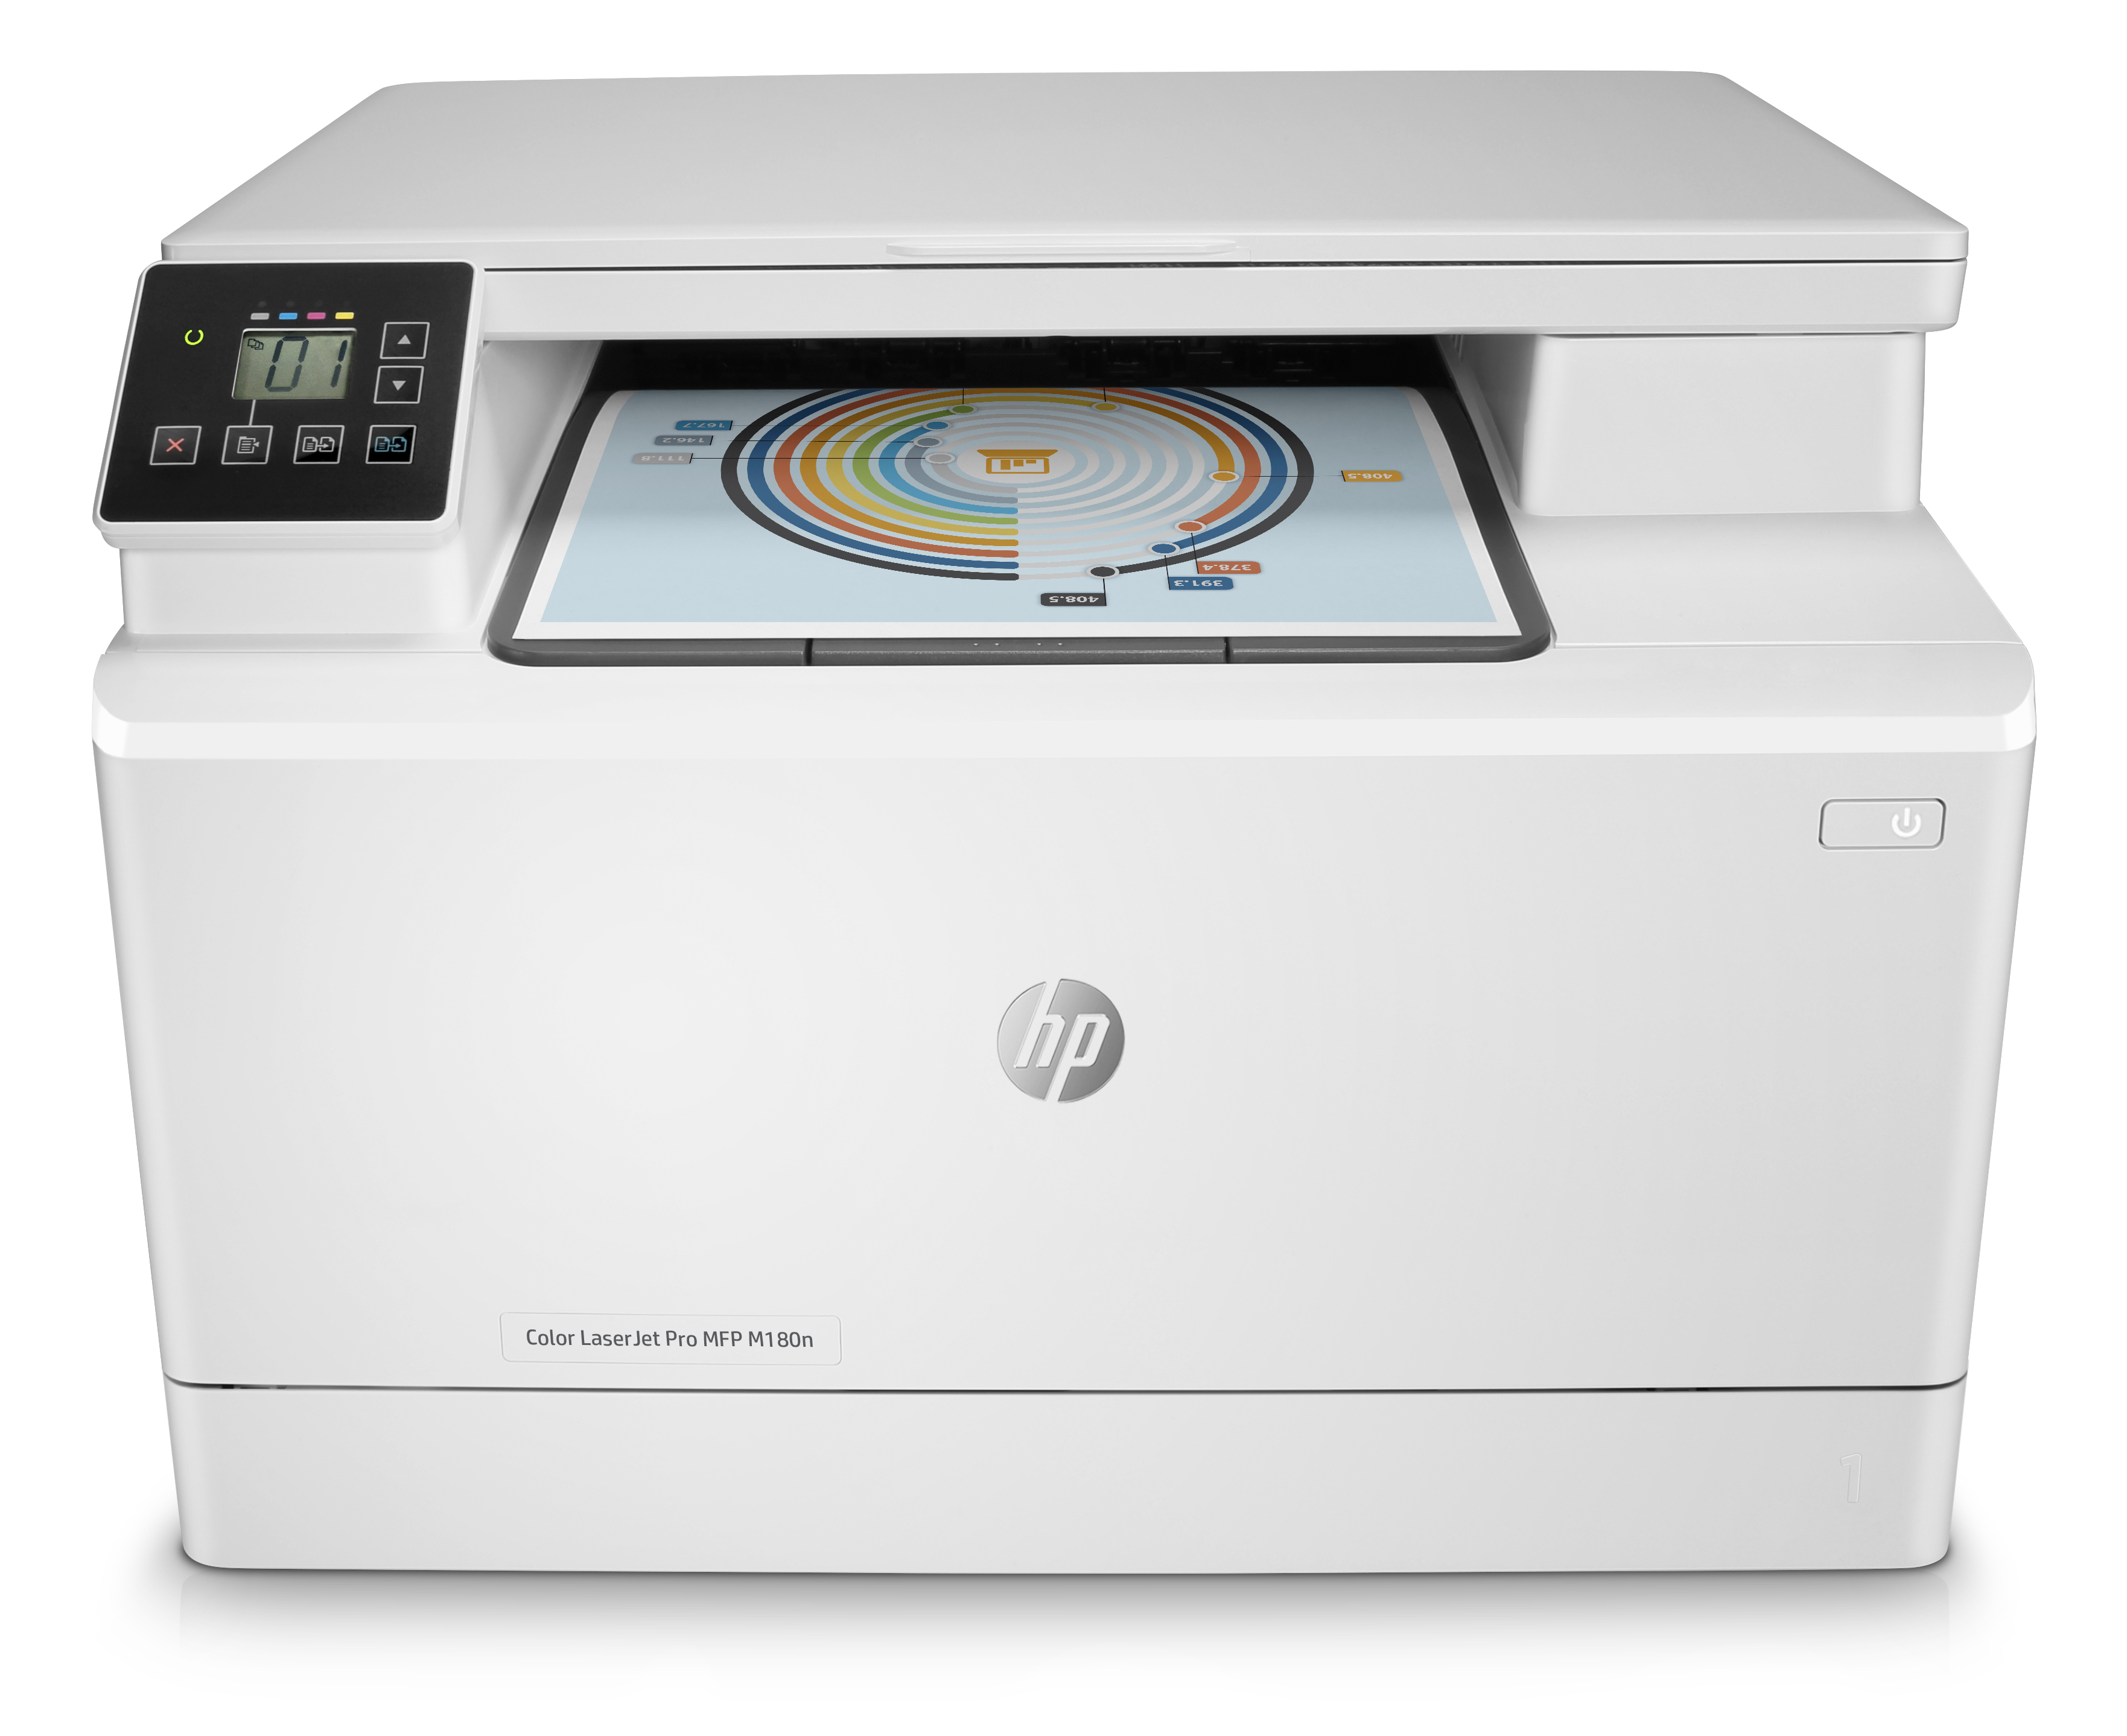 HP Color Laserjet Pro MFP M180 (Color Laserjet)